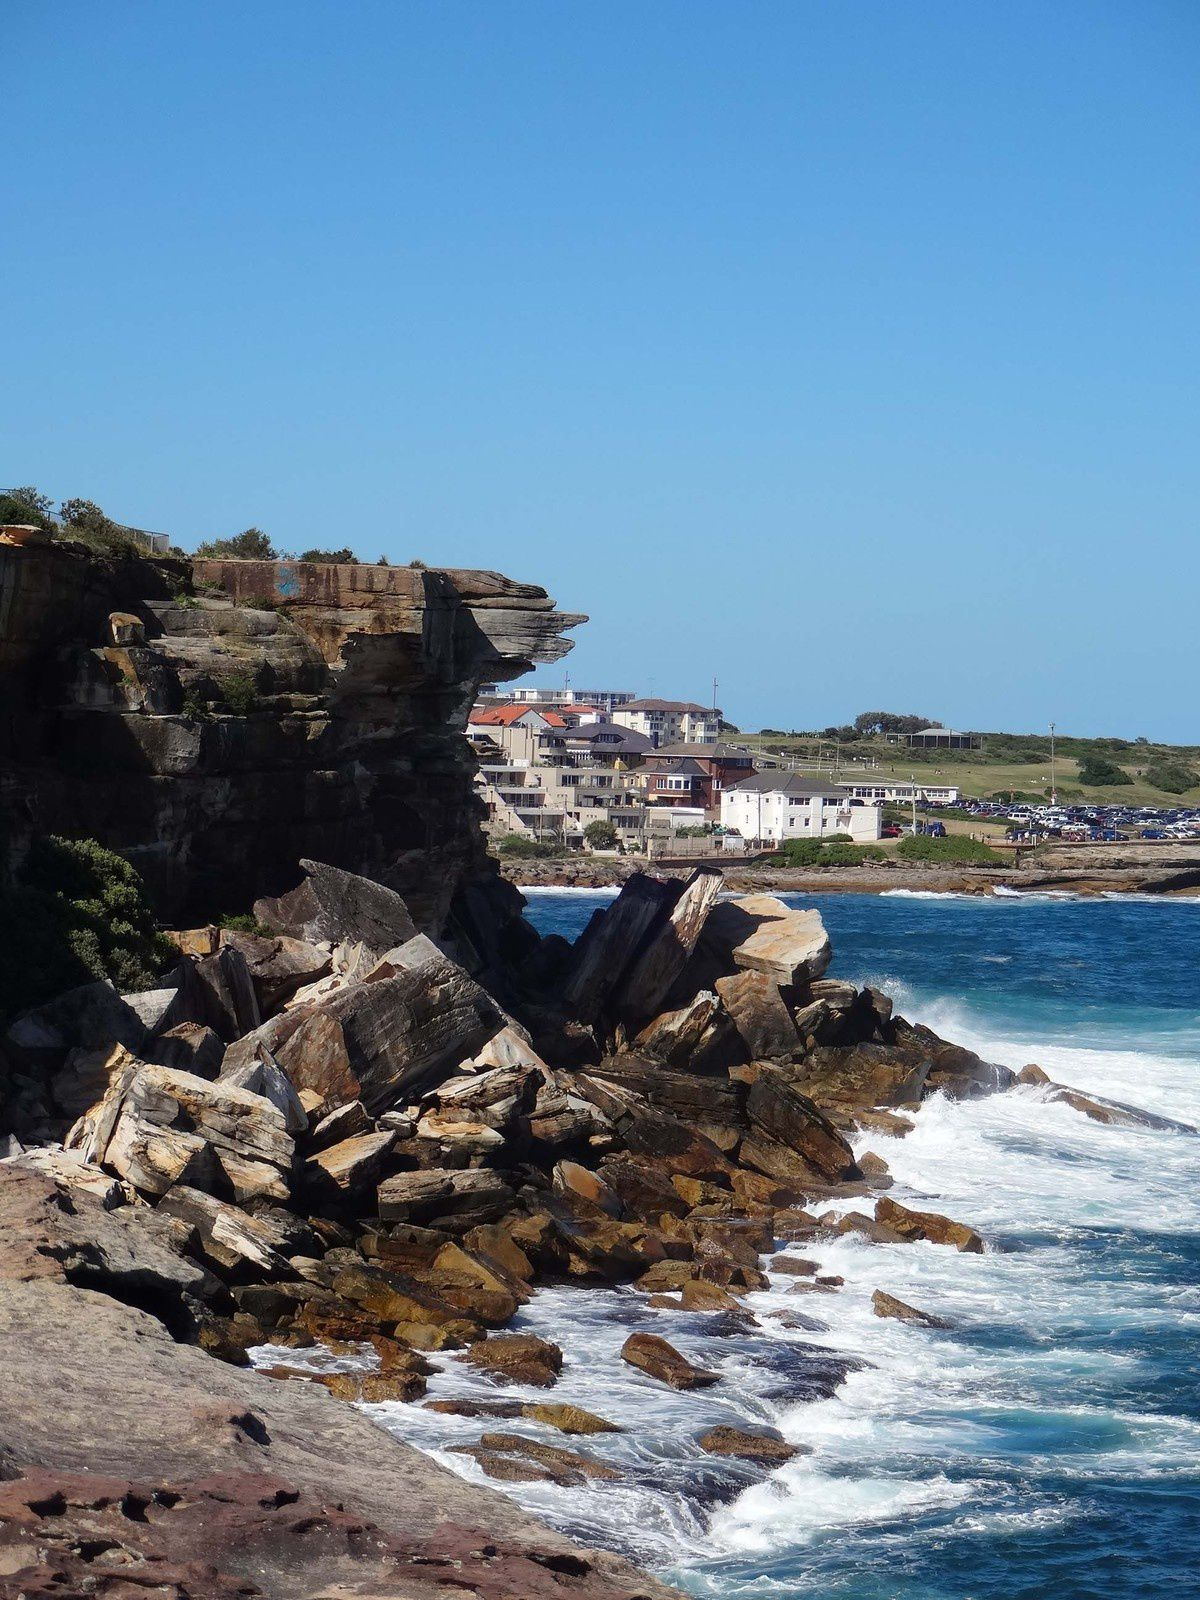 Coogee et en balade vers South Coogee